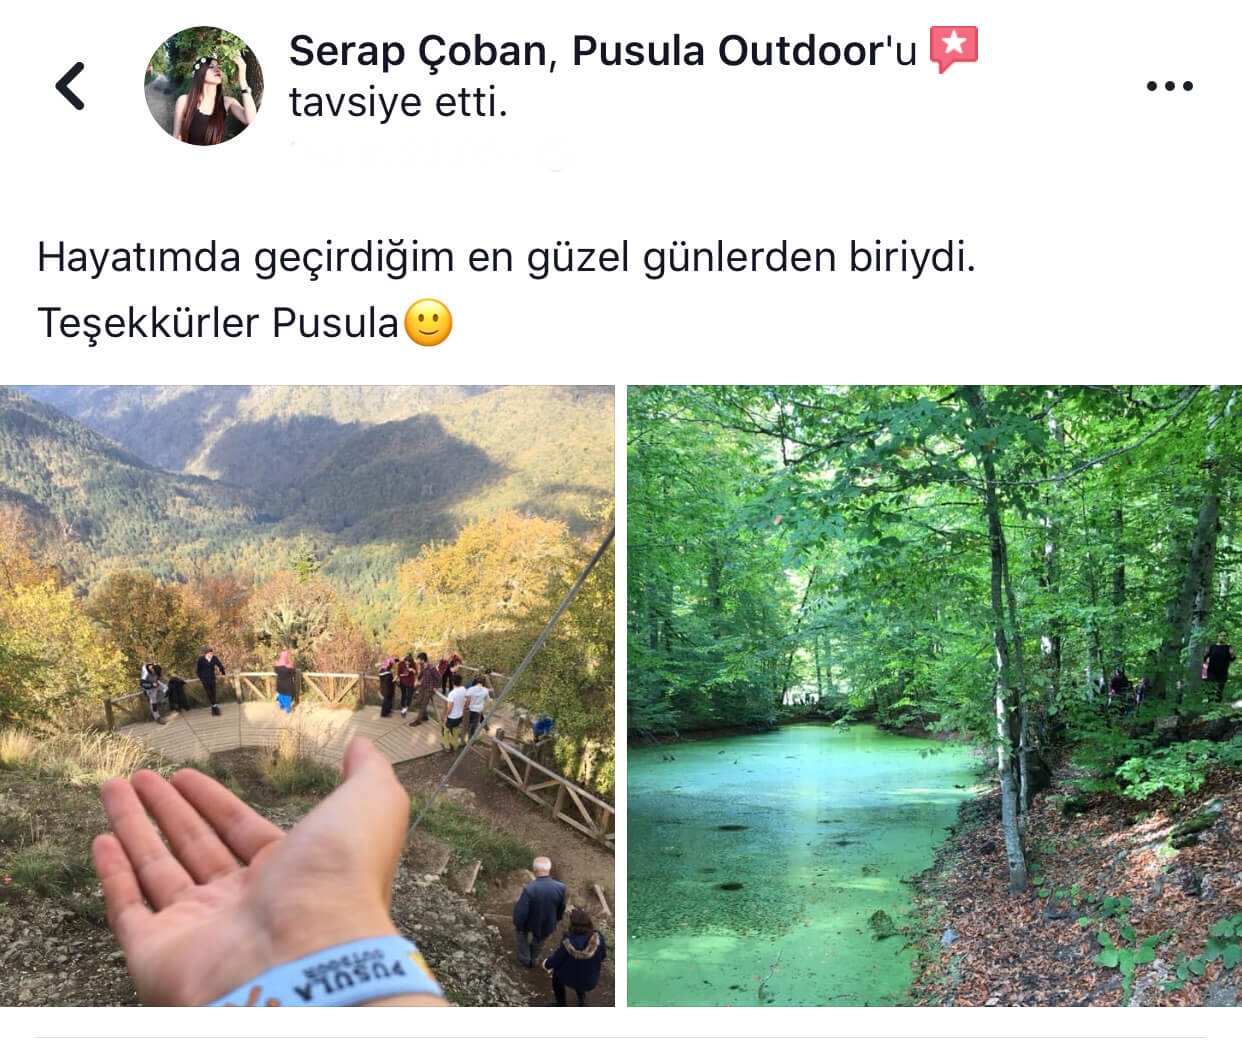 Pusula Outdoor